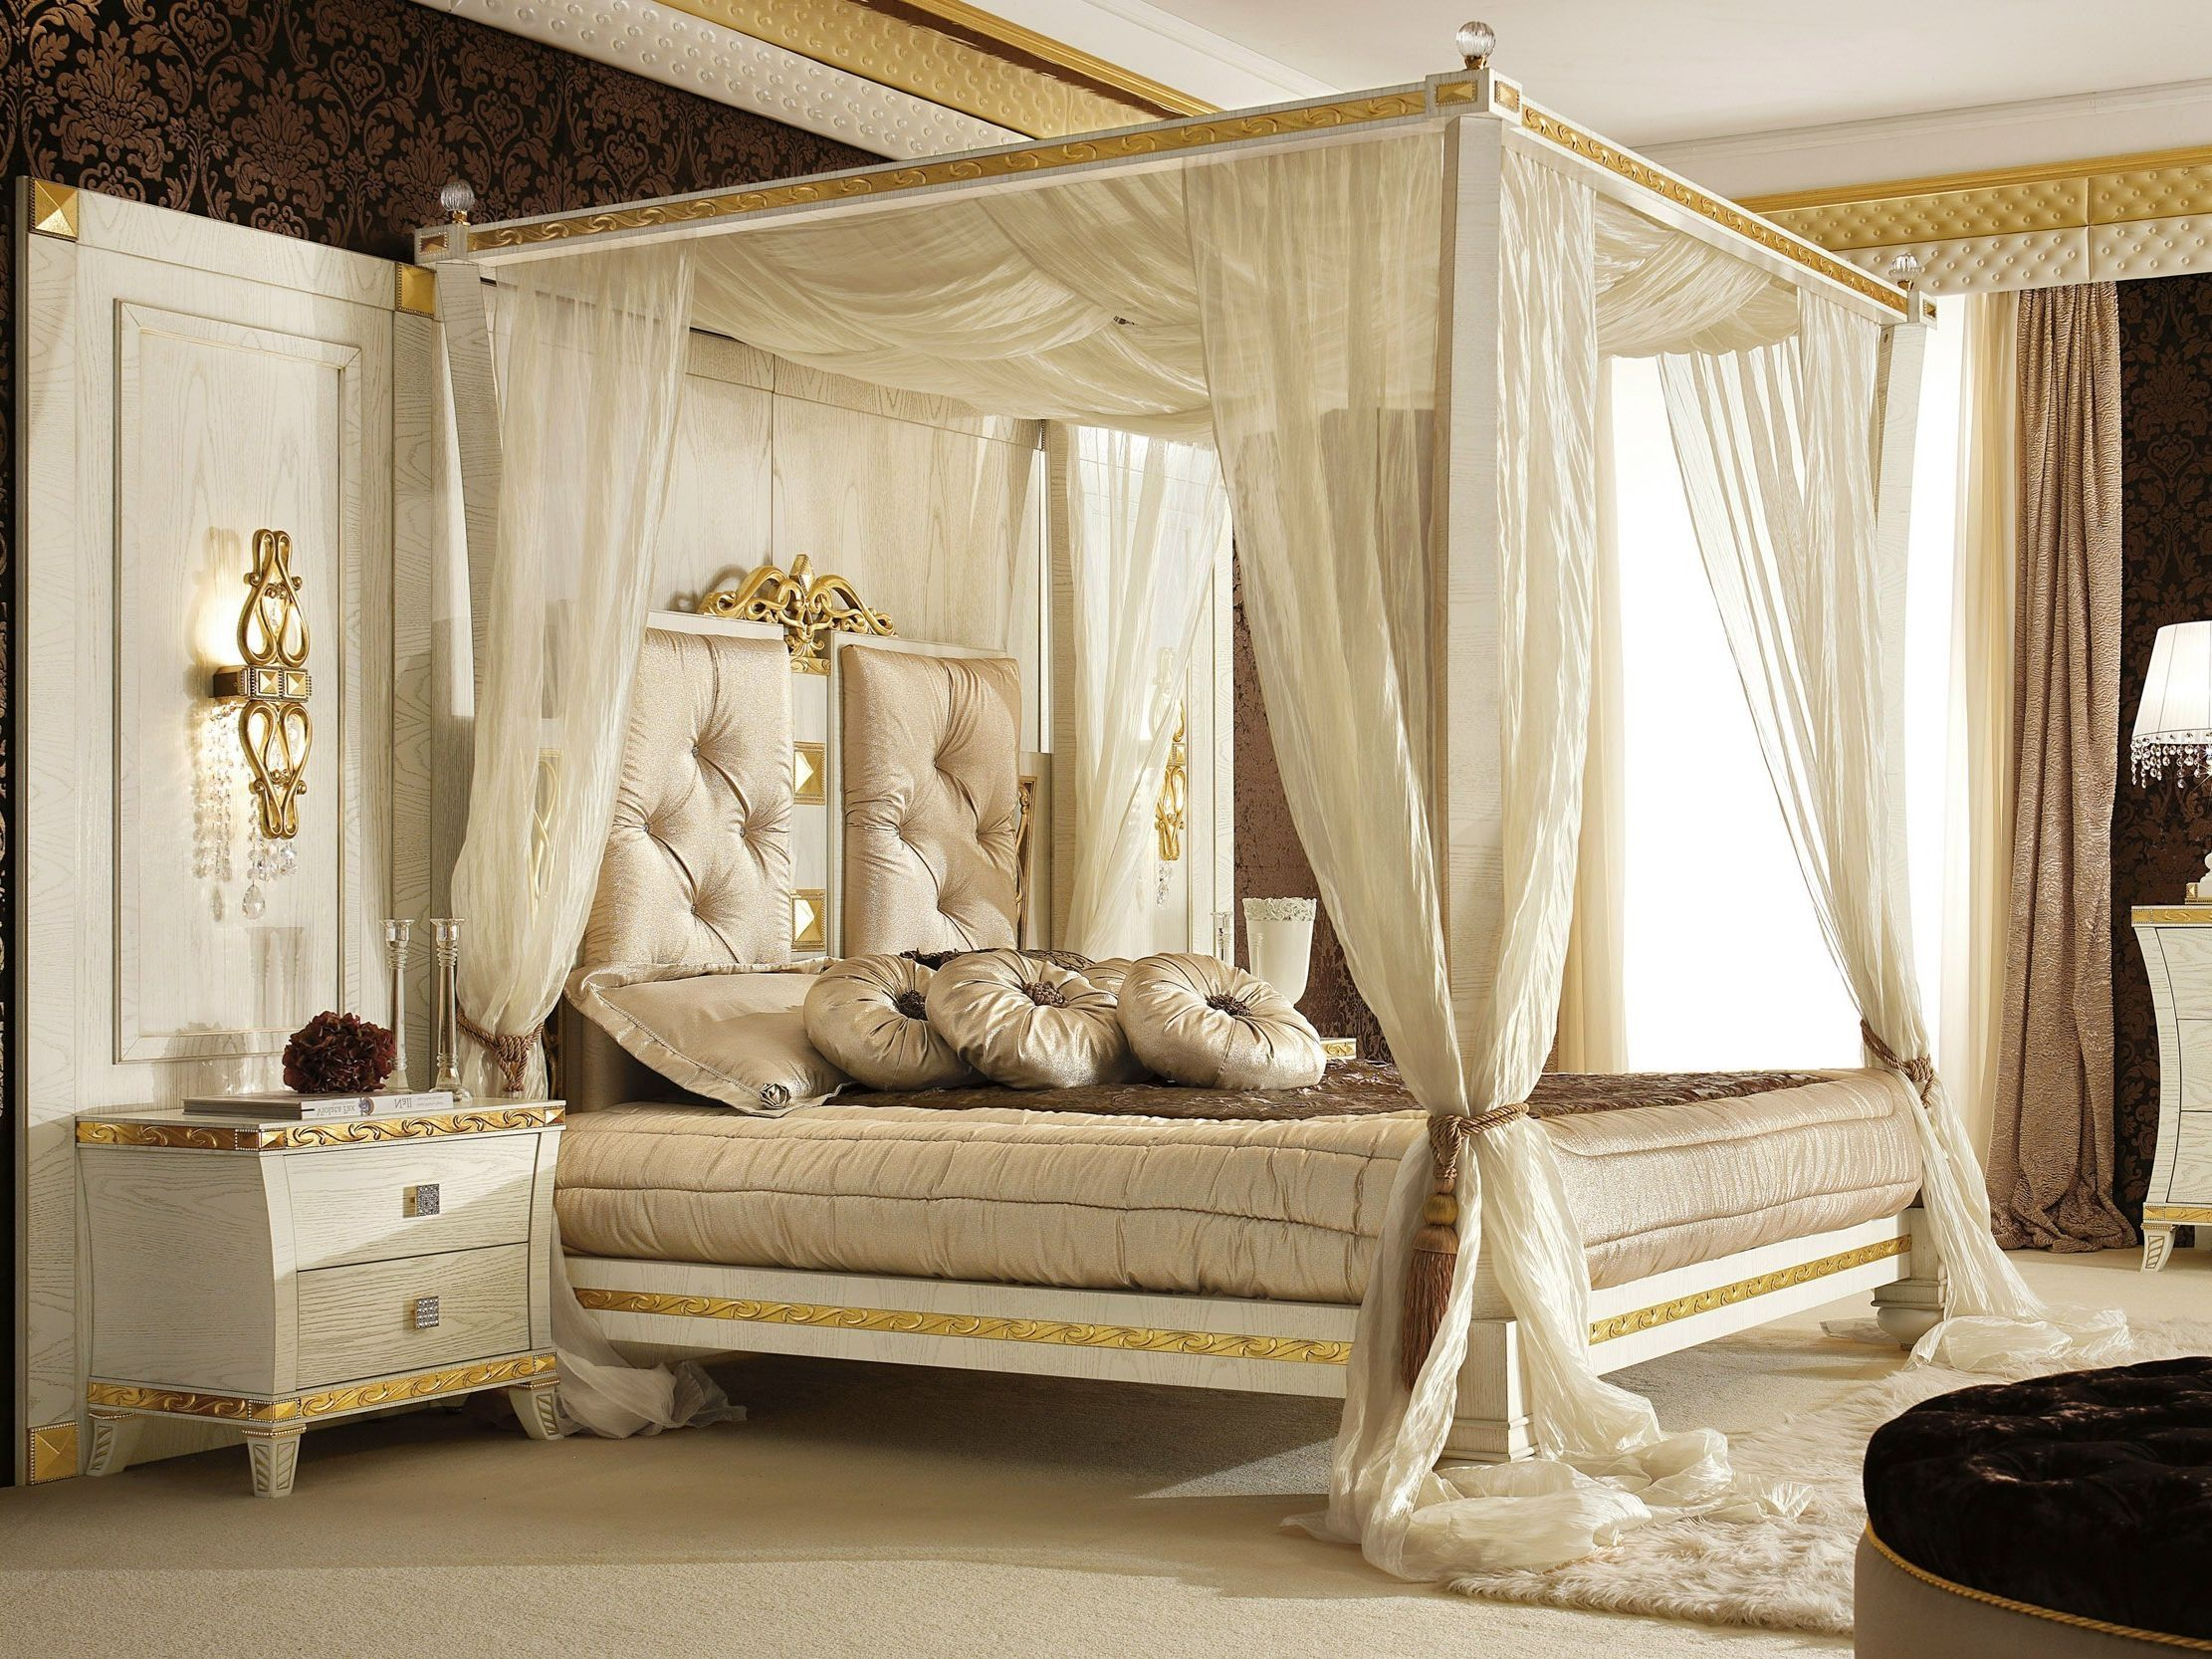 surprising buy curtains online delivery europe | home projects to